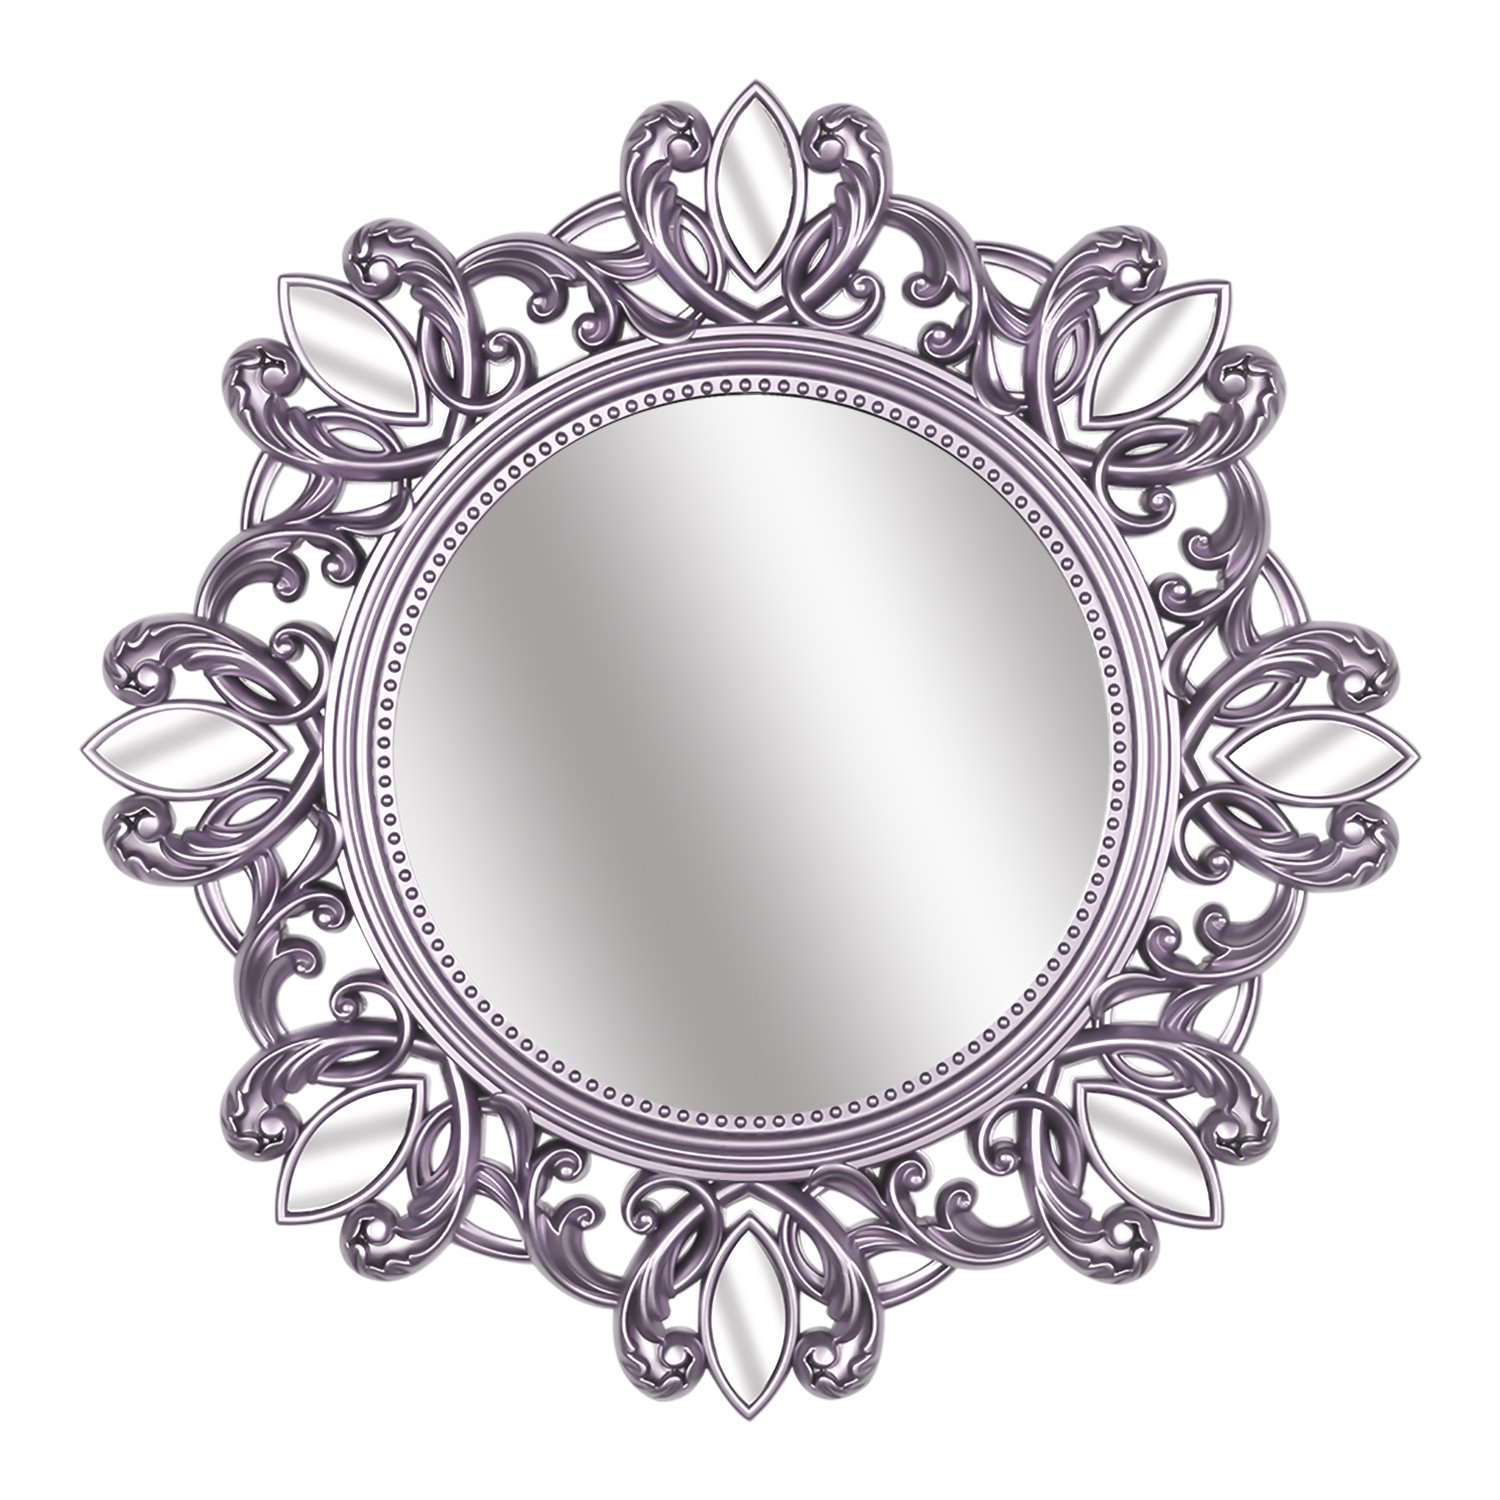 Hosal Gold Round Vintage Wall Mirror, Glamorous Patterned Frame Mirror, Decorative Mirror for Hallway Bedroom, Size 24''x24'' (Silver)